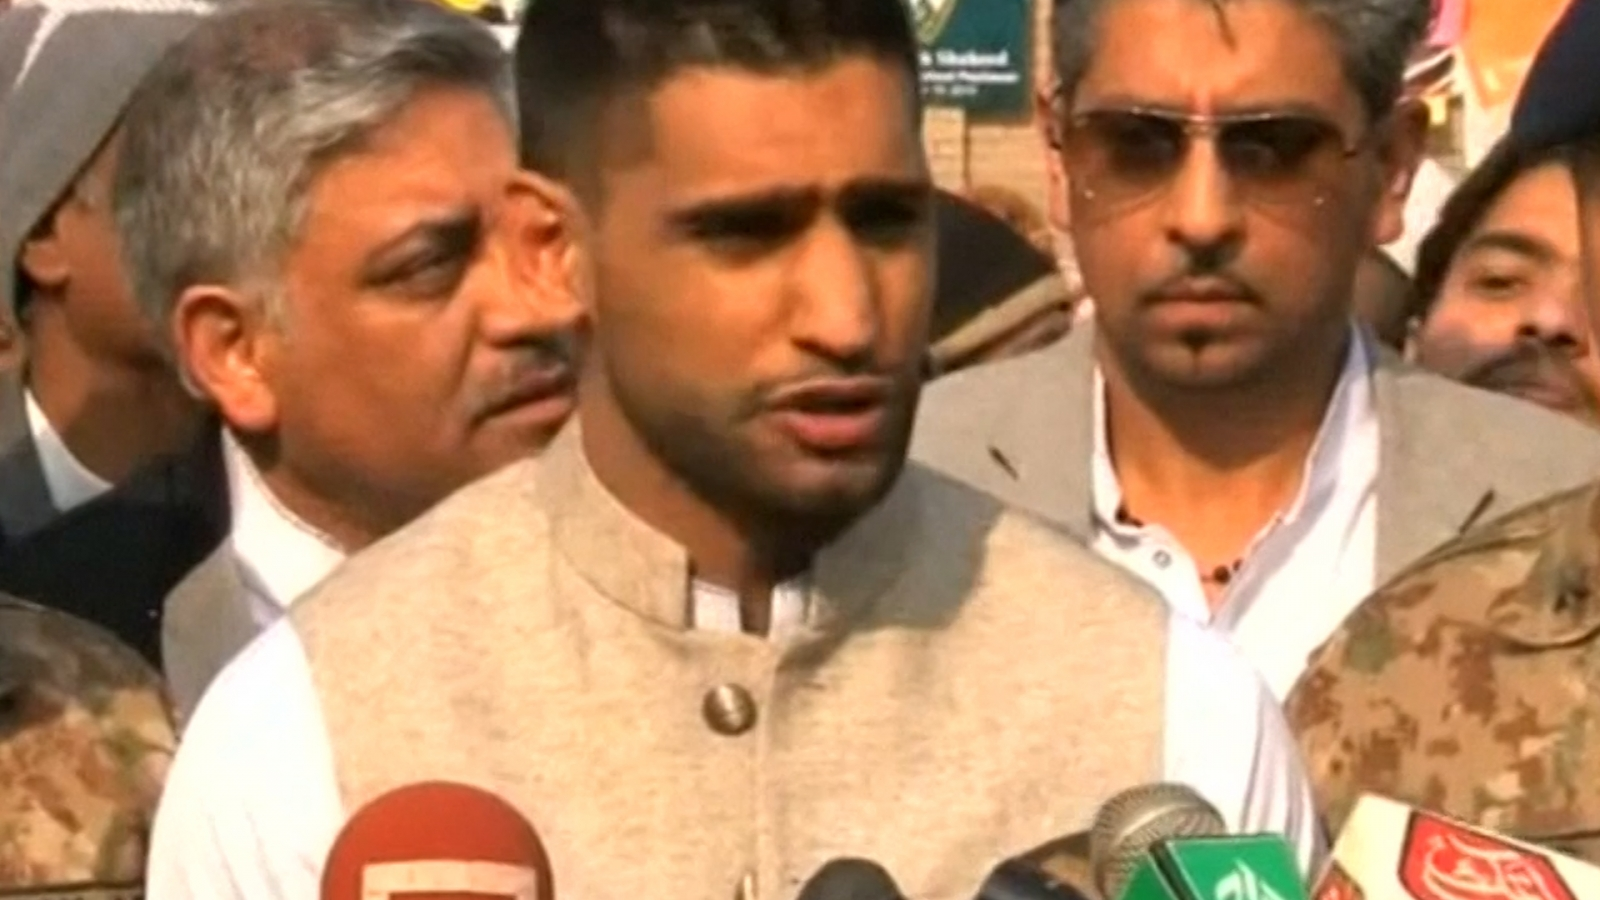 Amir Khan visits Peshawar school massacre site